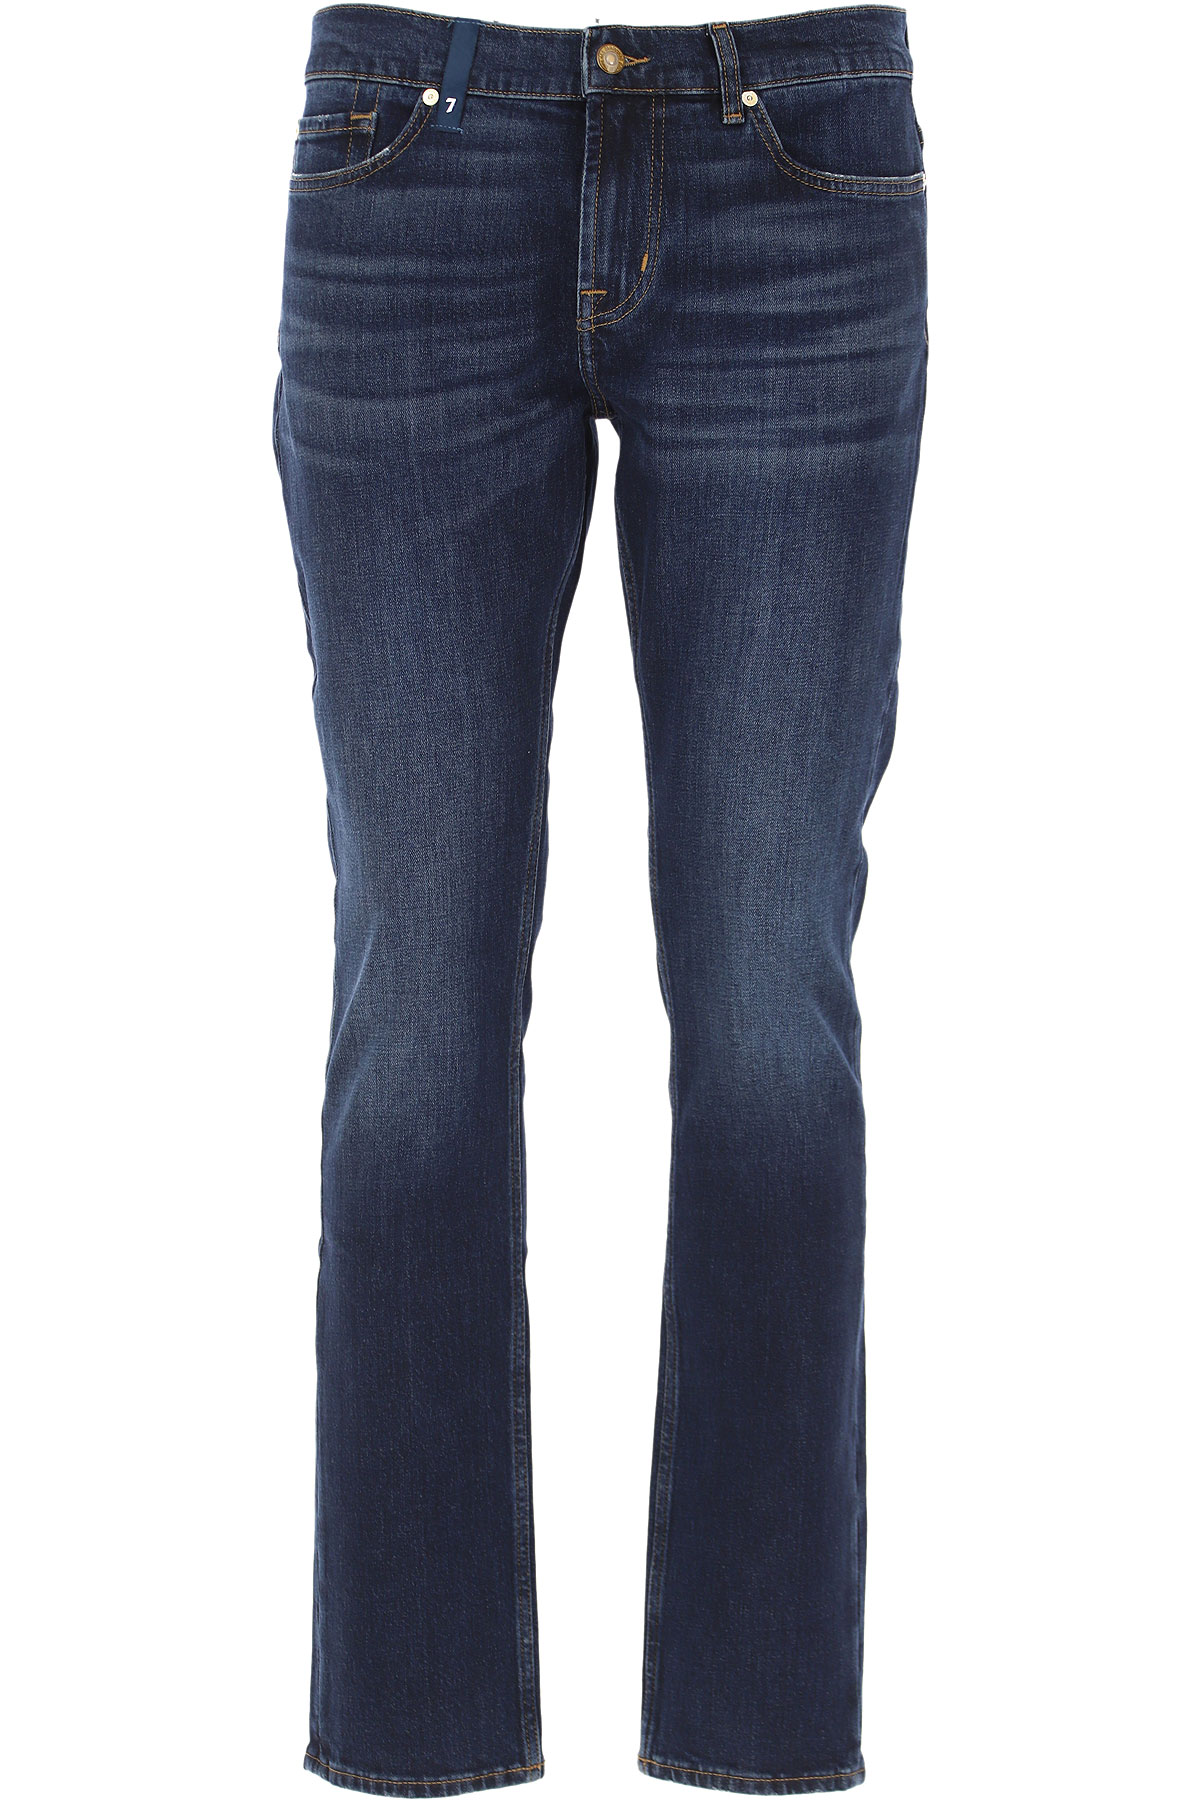 Seven For All Mankind Jeans, Denim, Cotton, 2019, 29 31 32 33 34